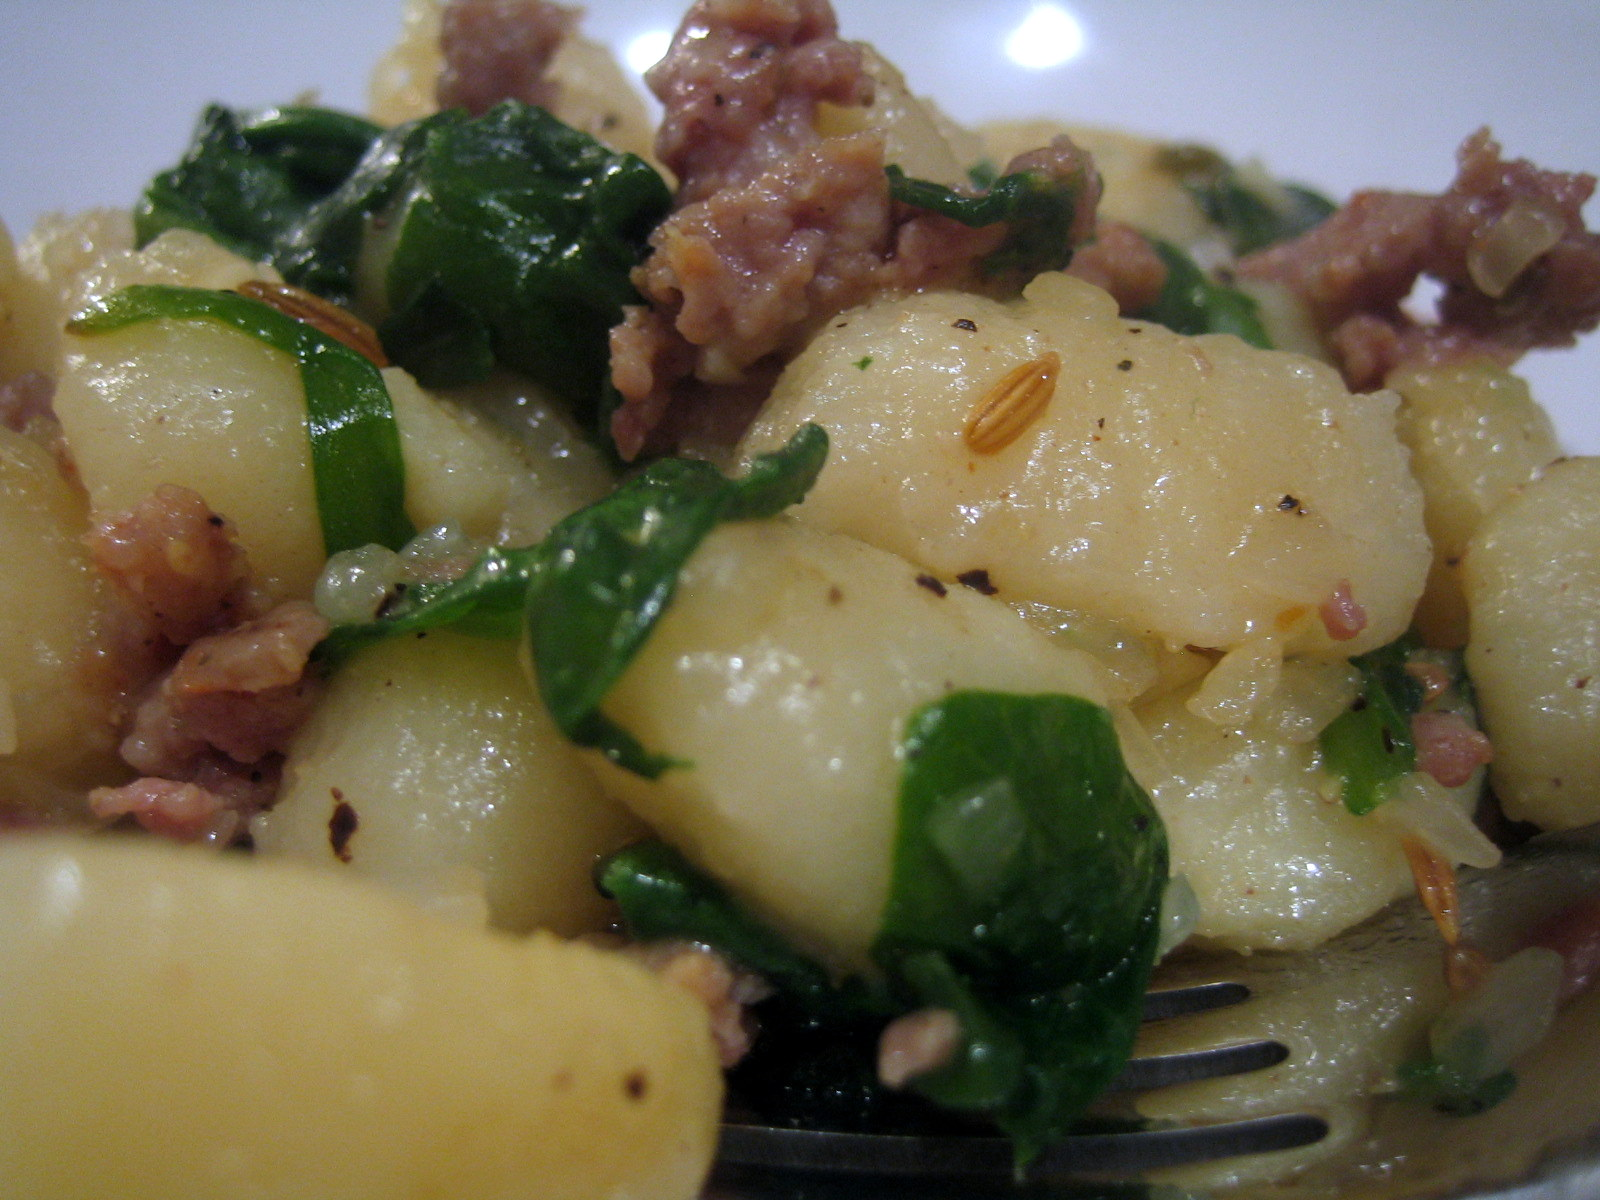 Gnocchi and Sausage Supper